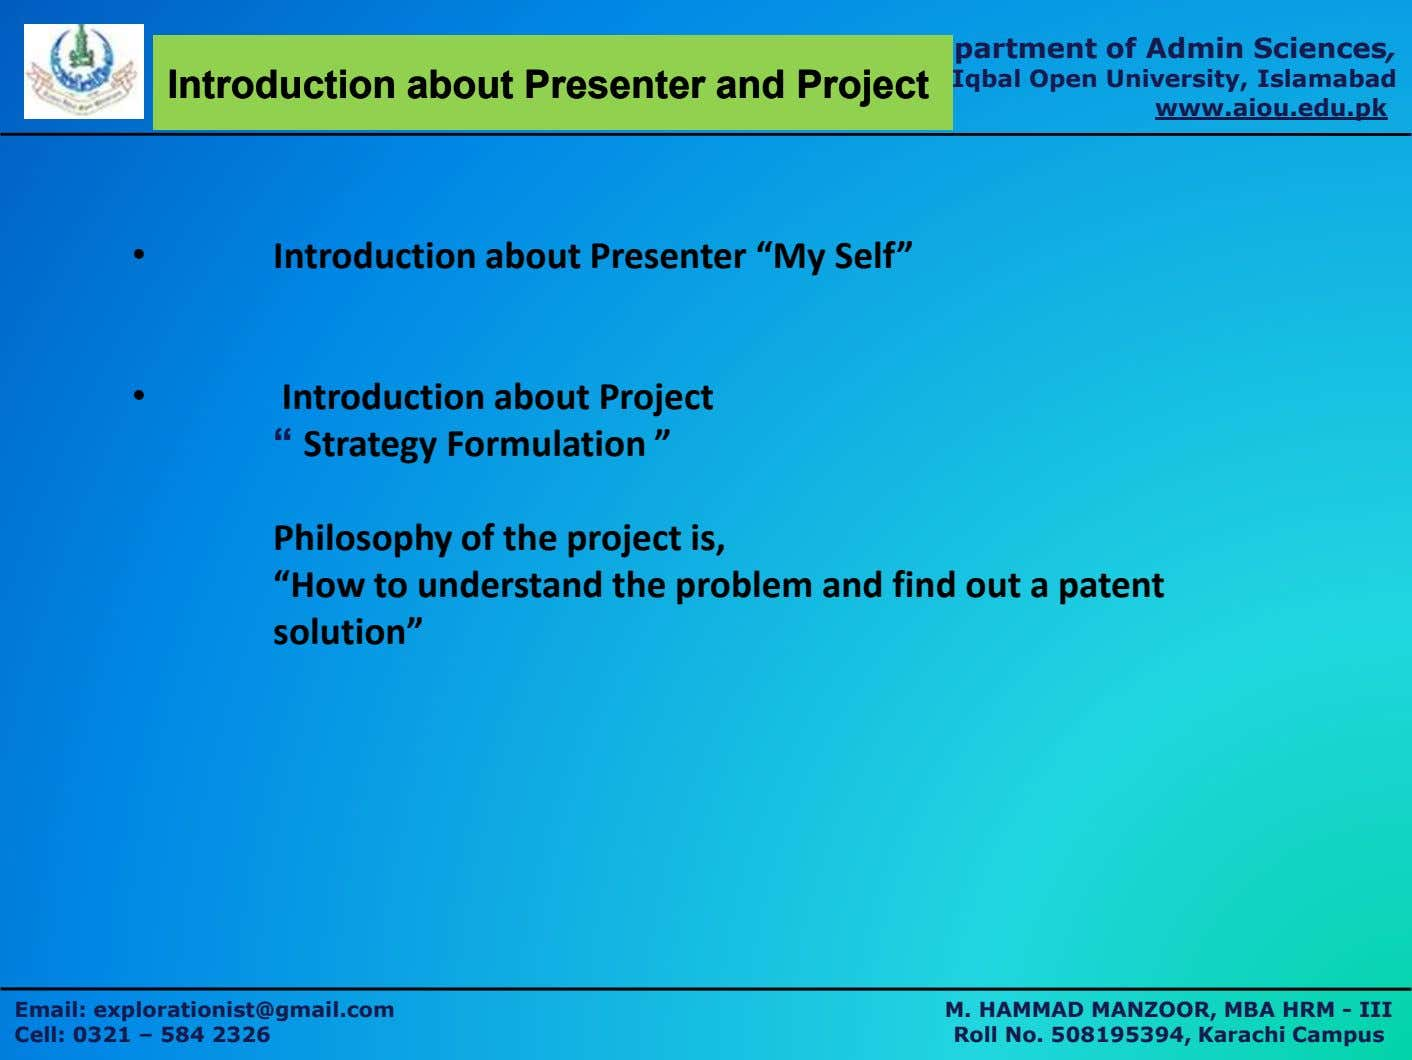 Department of Admin Sciences, IntroductionIntroduction aboutabout PresenterPresenter andand ProjectProject Allama Iqbal